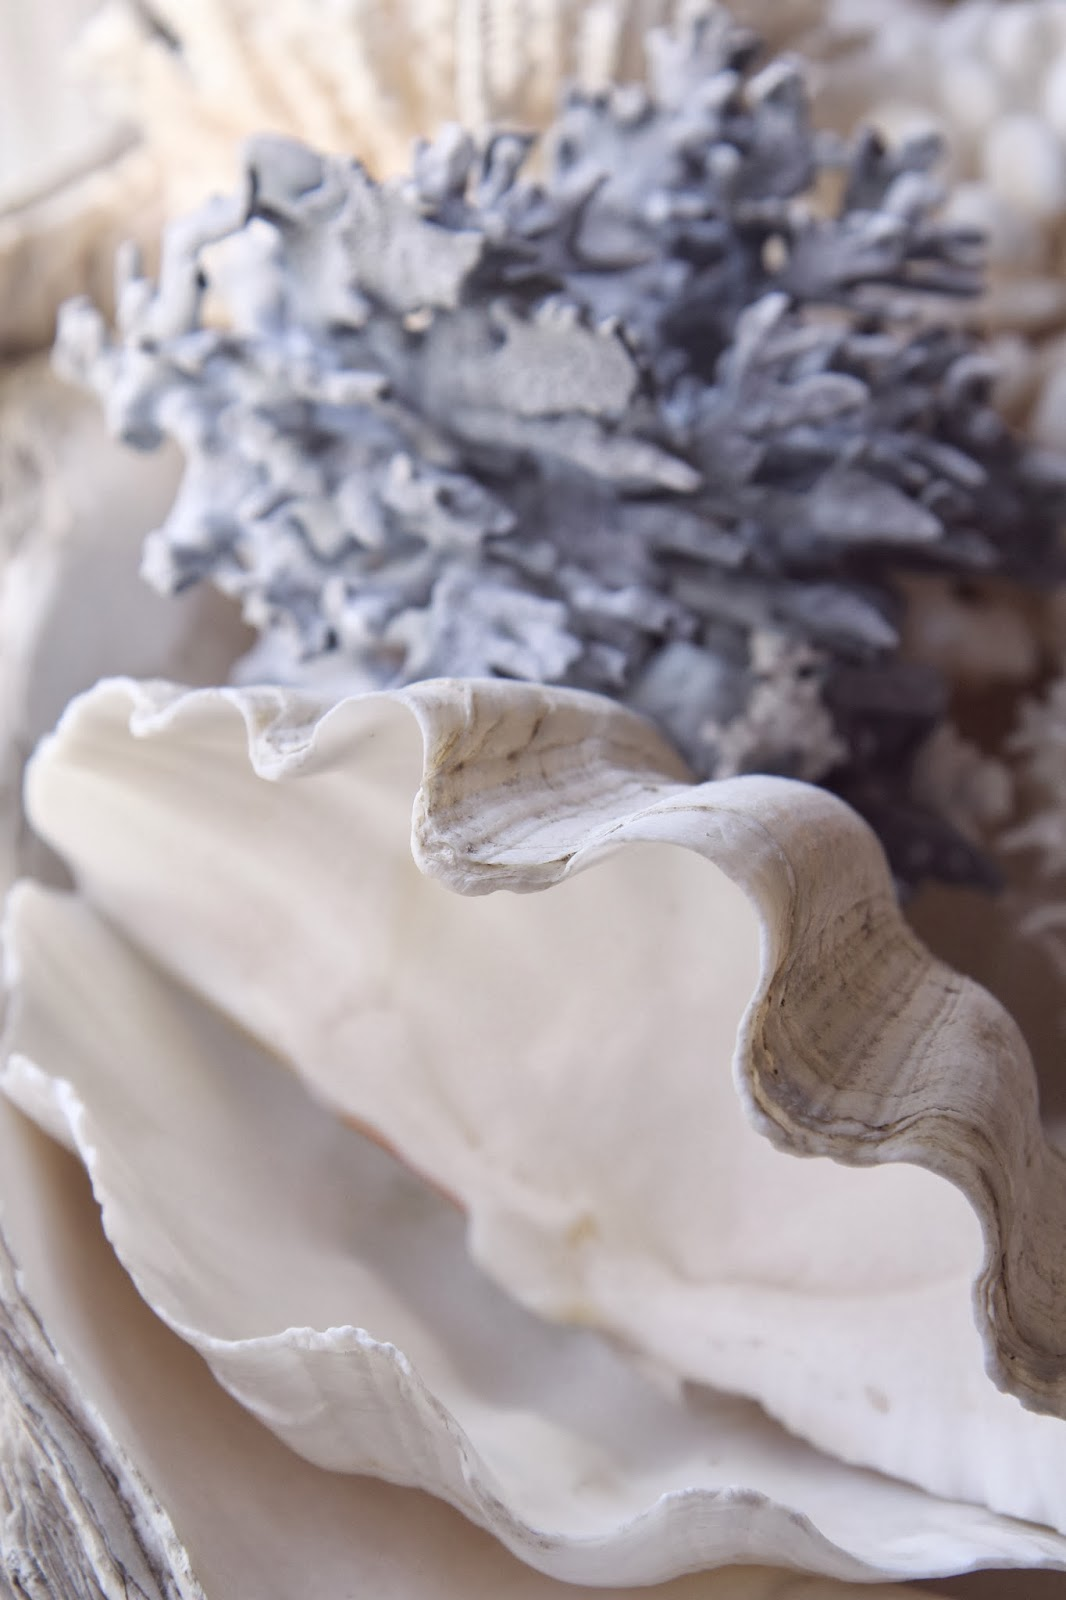 Blue Coral and clam shell: Nature's Sculptures